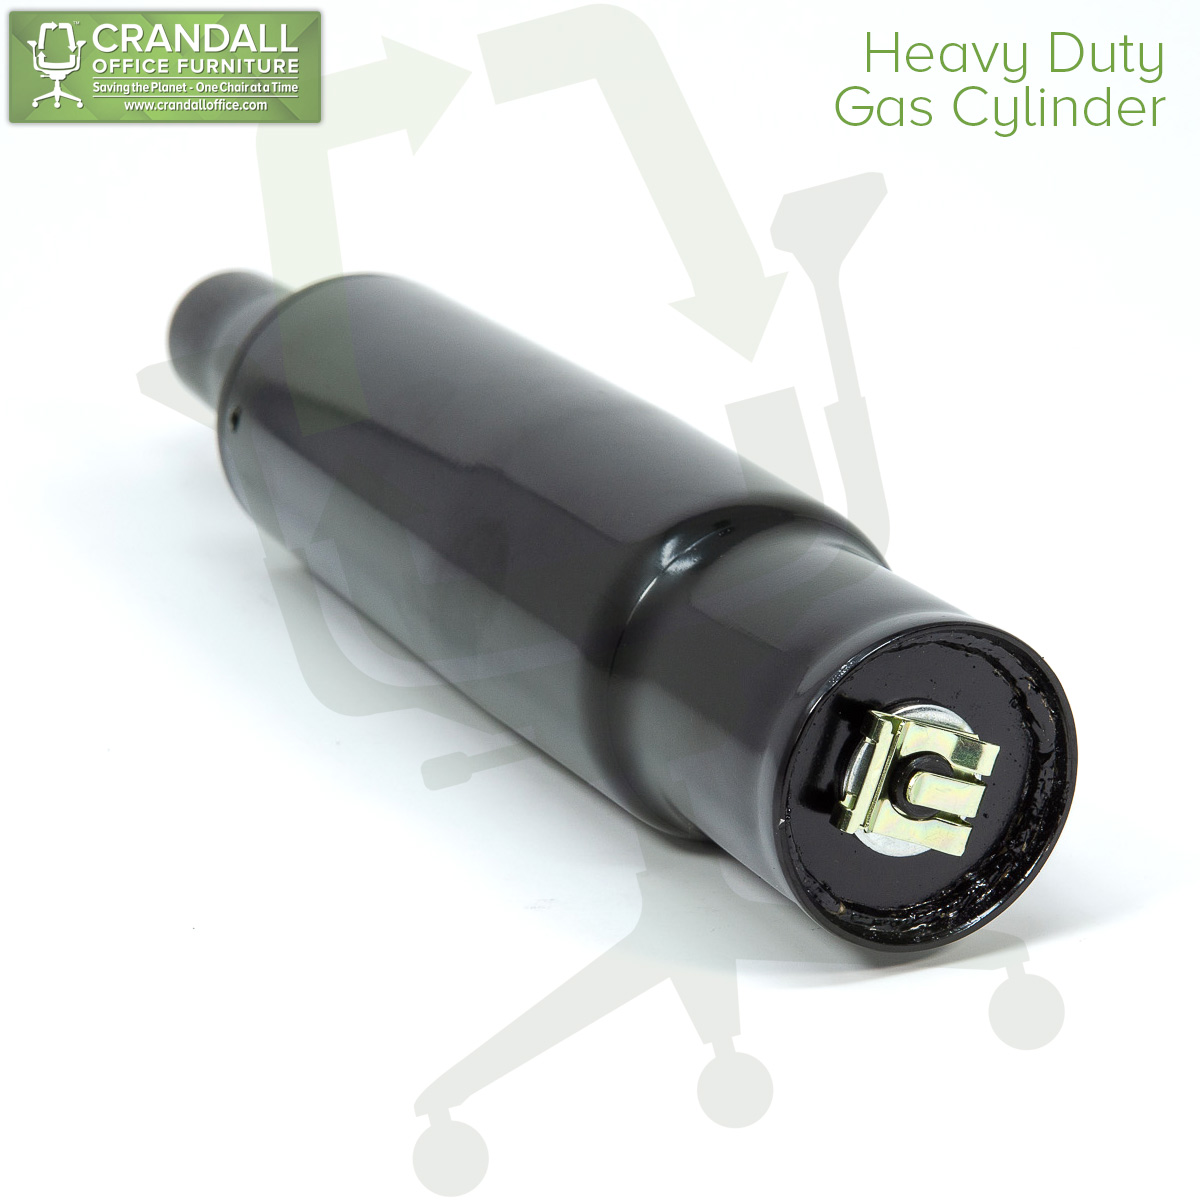 Crandall Office Furniture Aftermarket Heavy Duty Gas Cylinder 0003